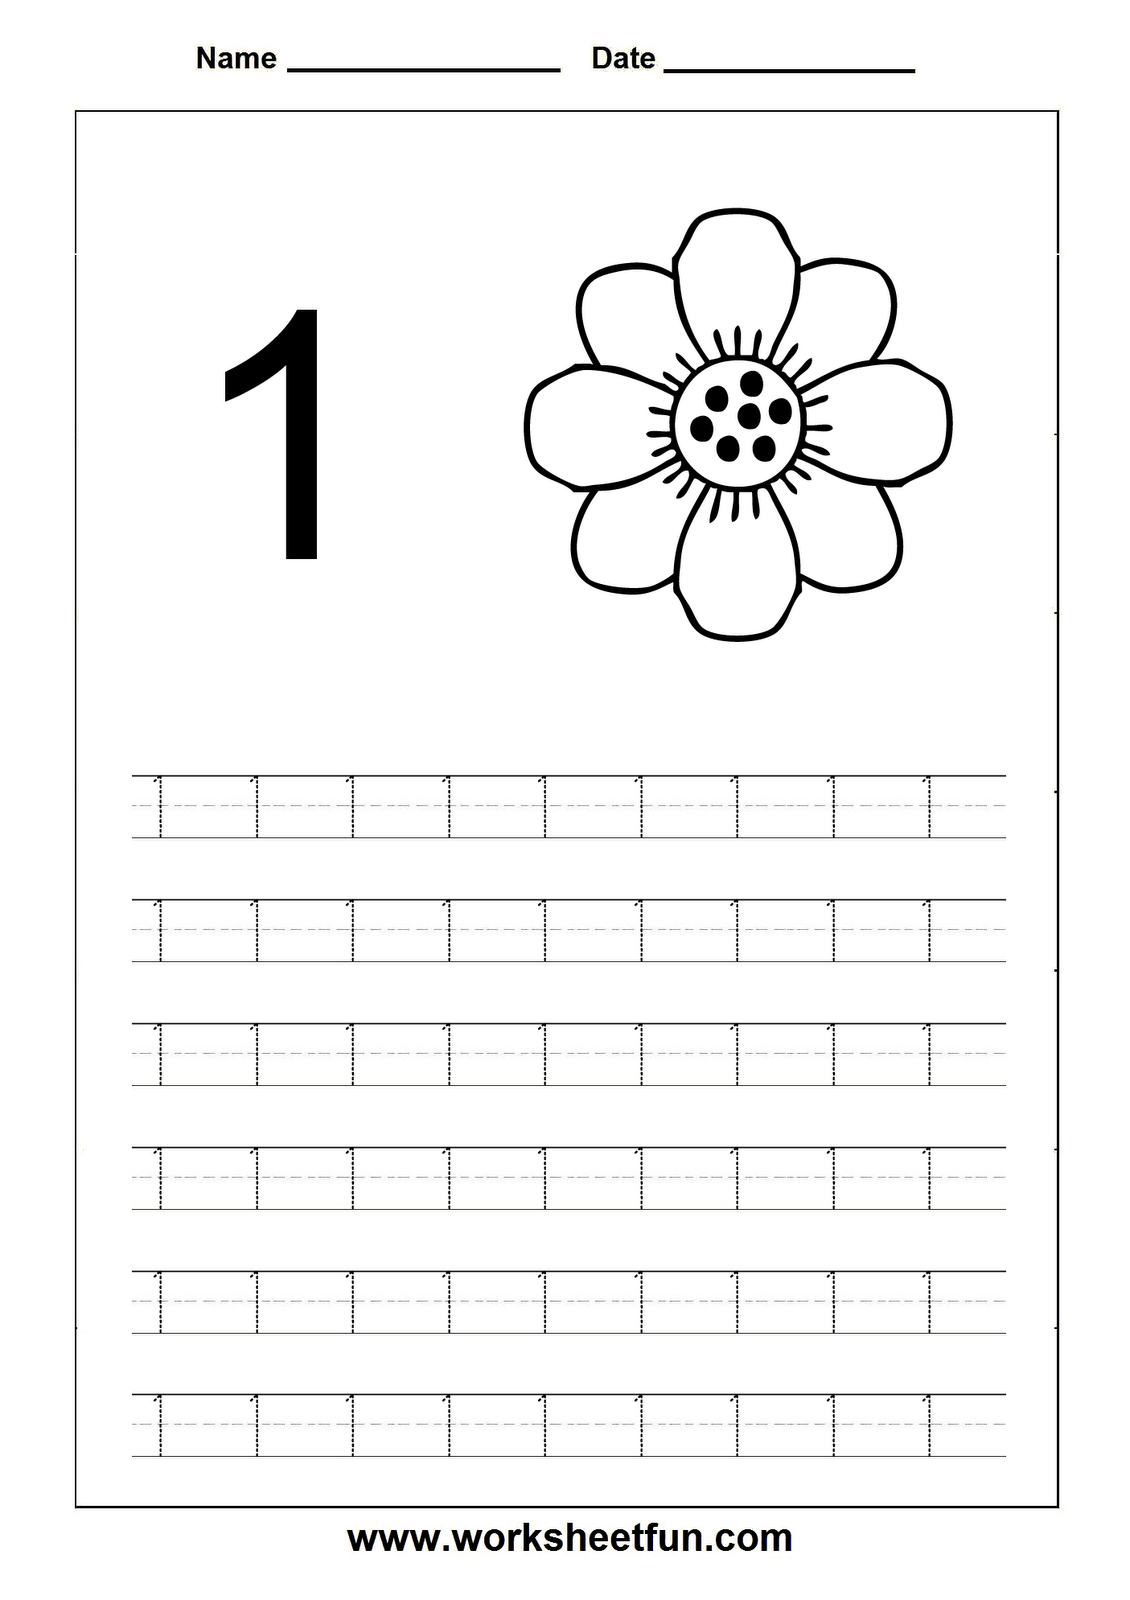 Worksheets Preschool Number 1 Worksheets number 1 one tracing and coloring worksheets crafts 2